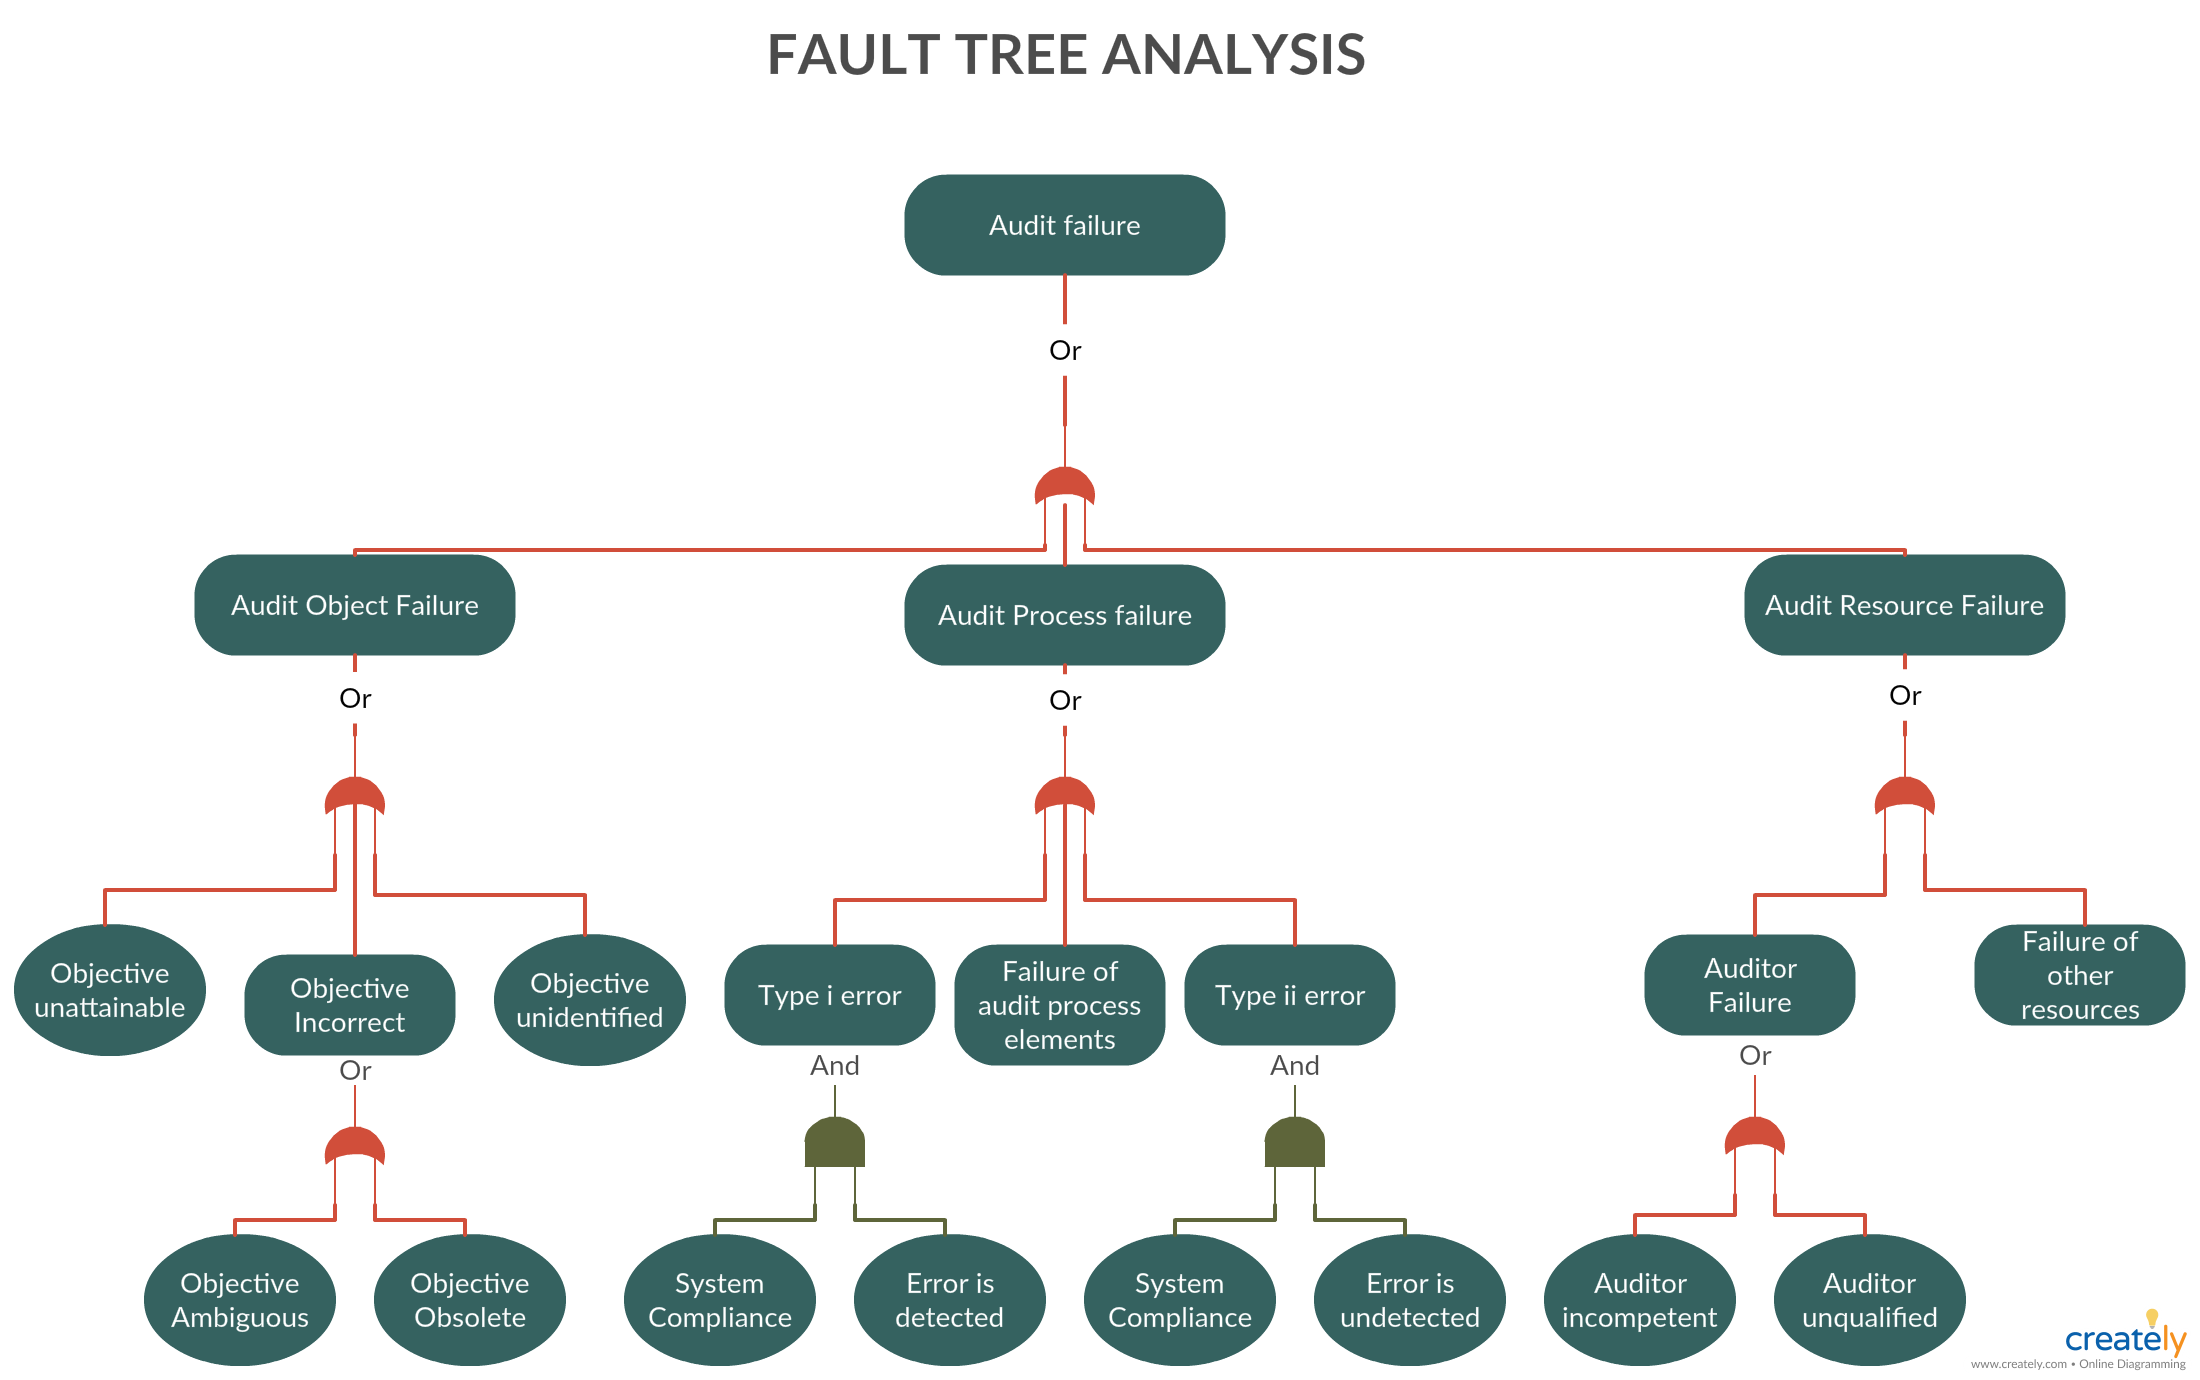 medium resolution of fault tree analysis diagram fault tree analysis is a top down deductive failure analysis in which an undesired state of a system is analyzed using